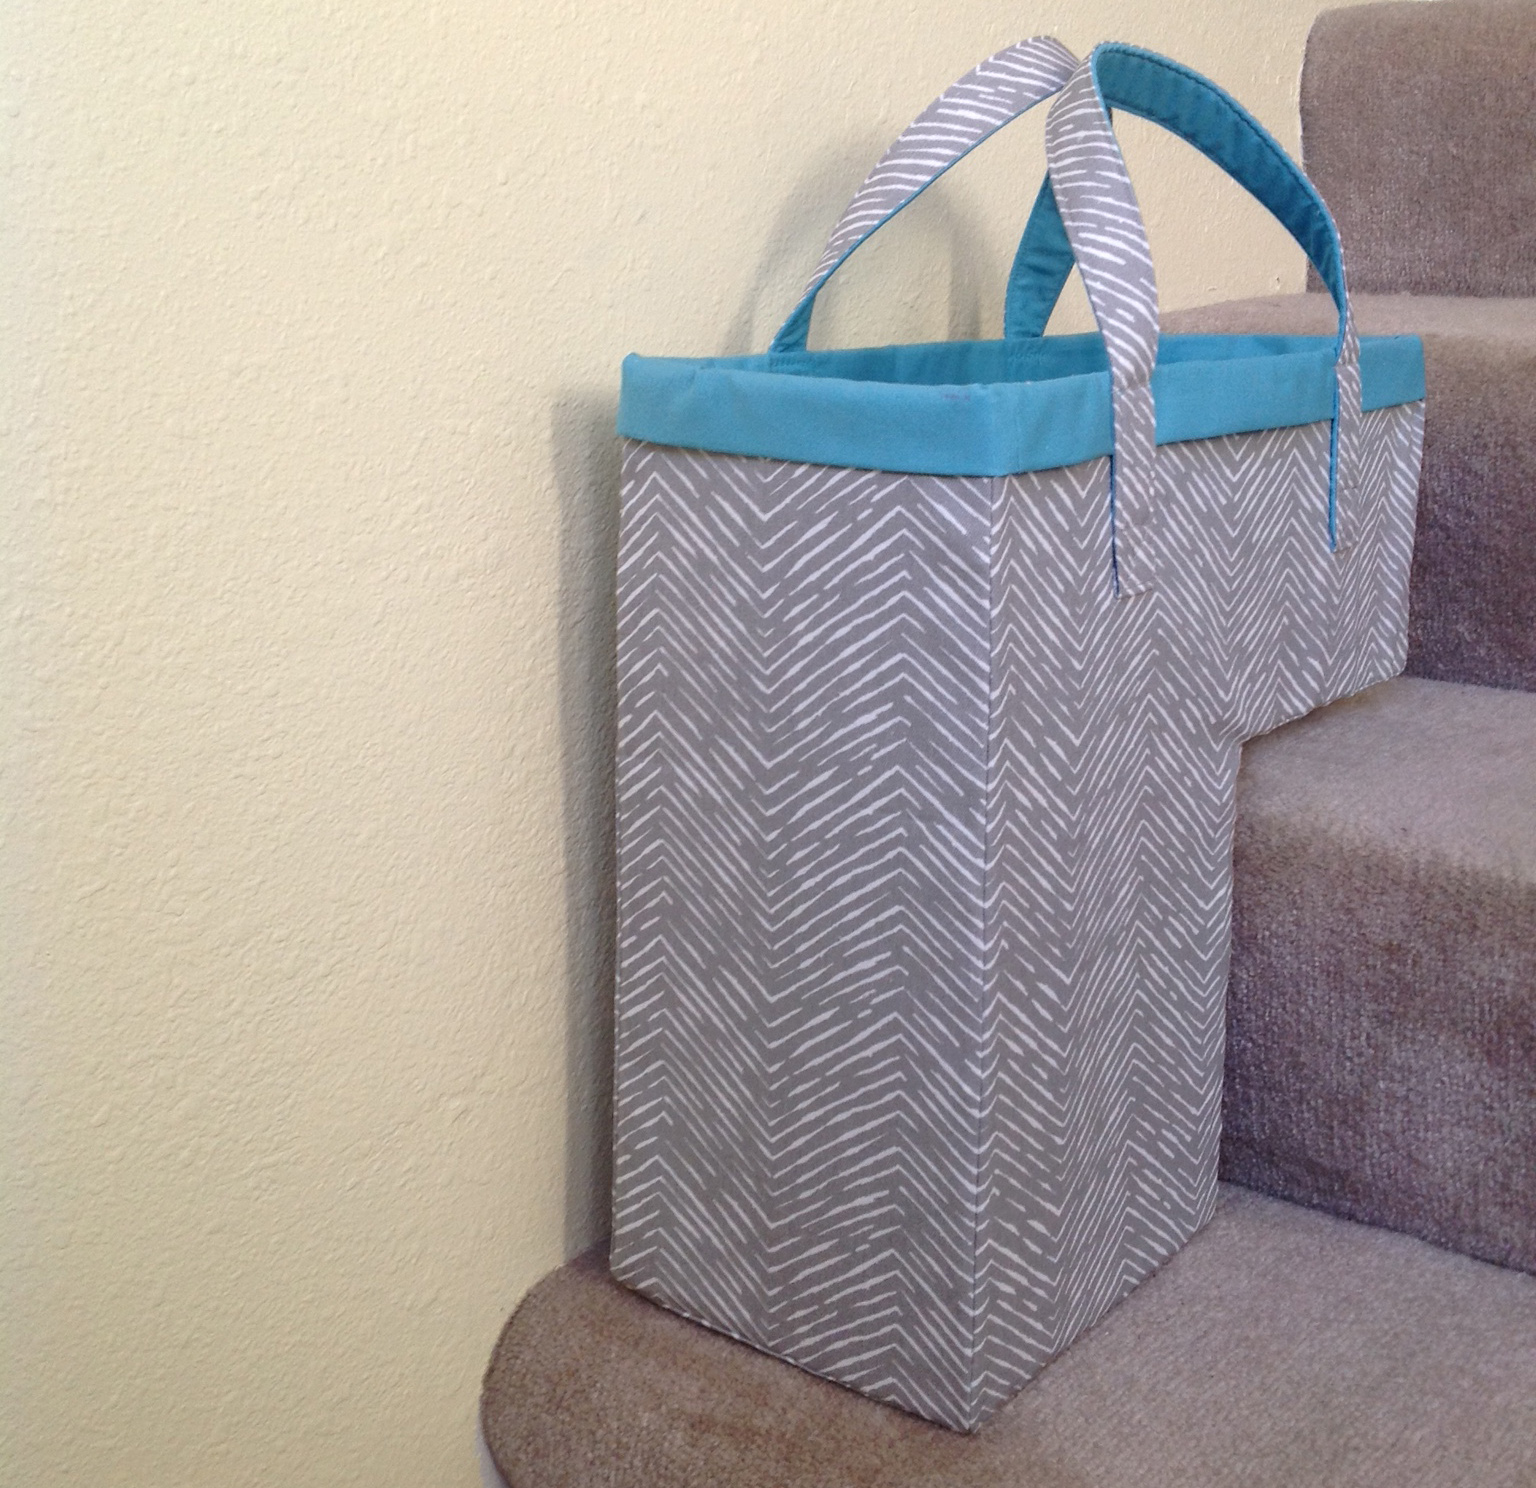 Attrayant Amazing Modern Basket Design For Stairs In Gray Coat With Blue Accent For  Handle On Gray